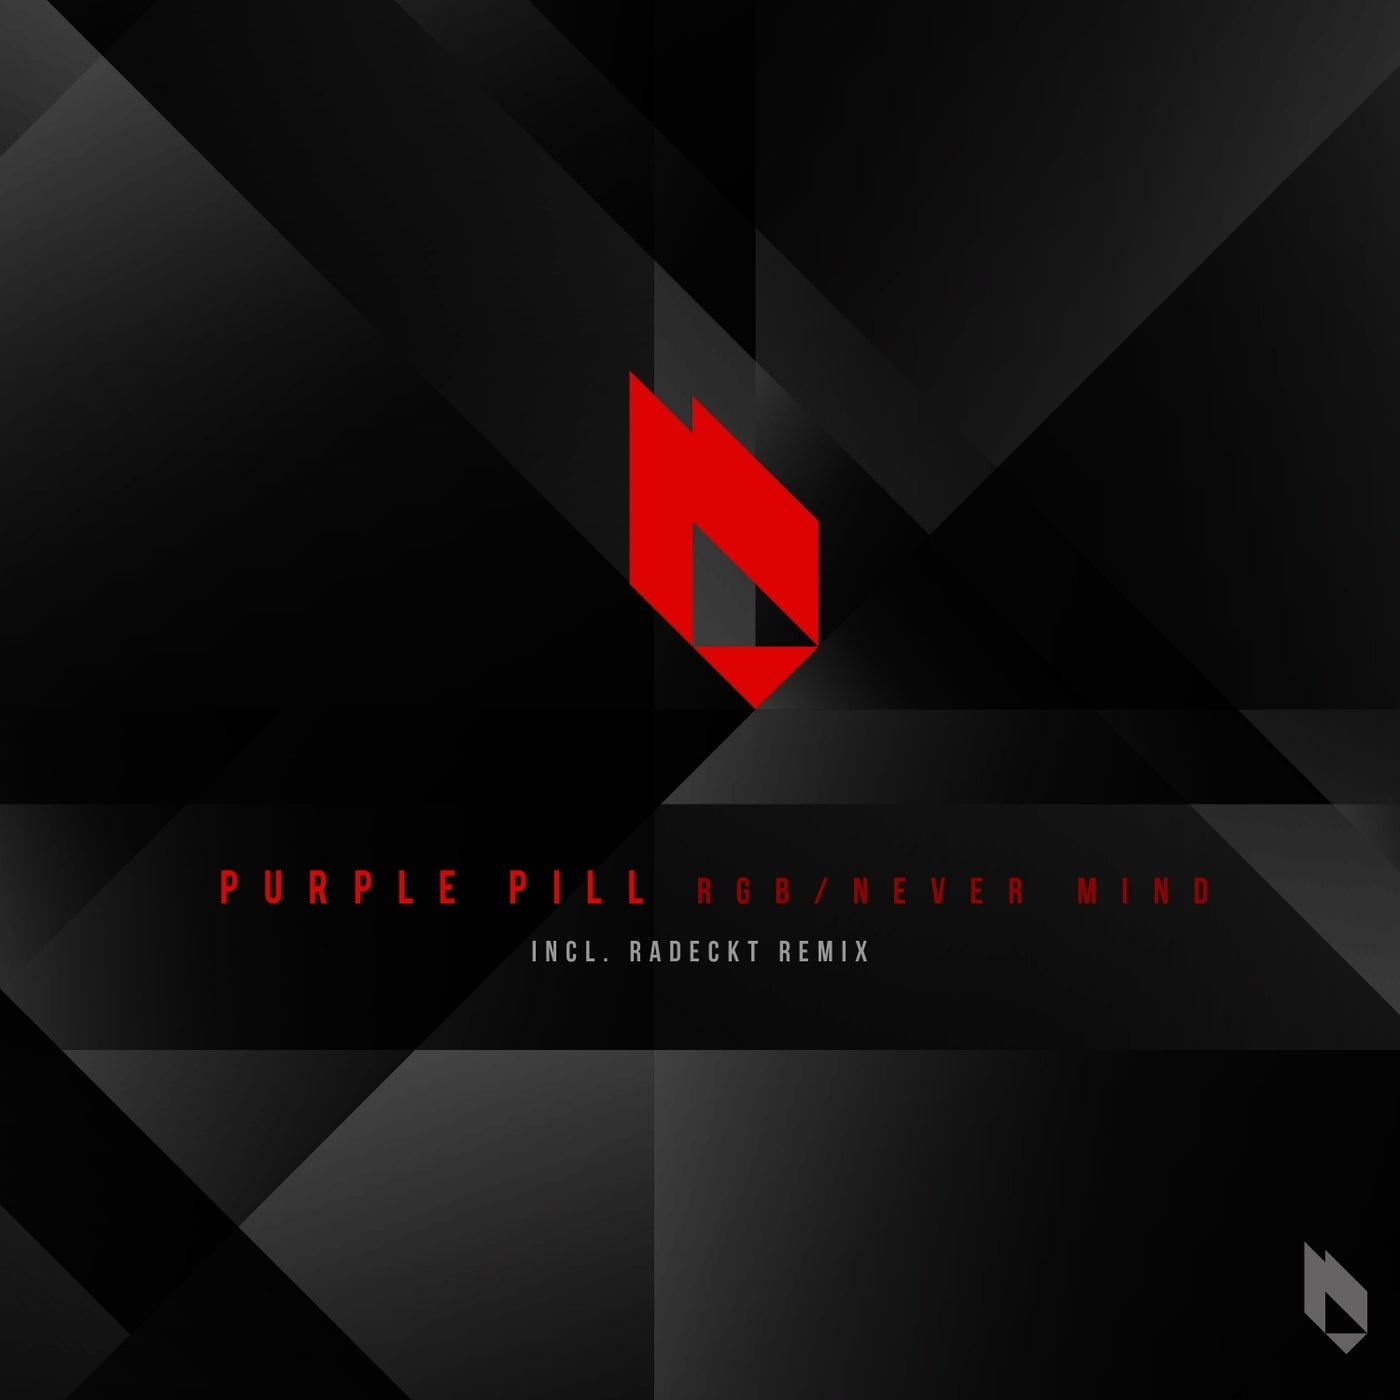 Download Rgb / Never Mind on Electrobuzz